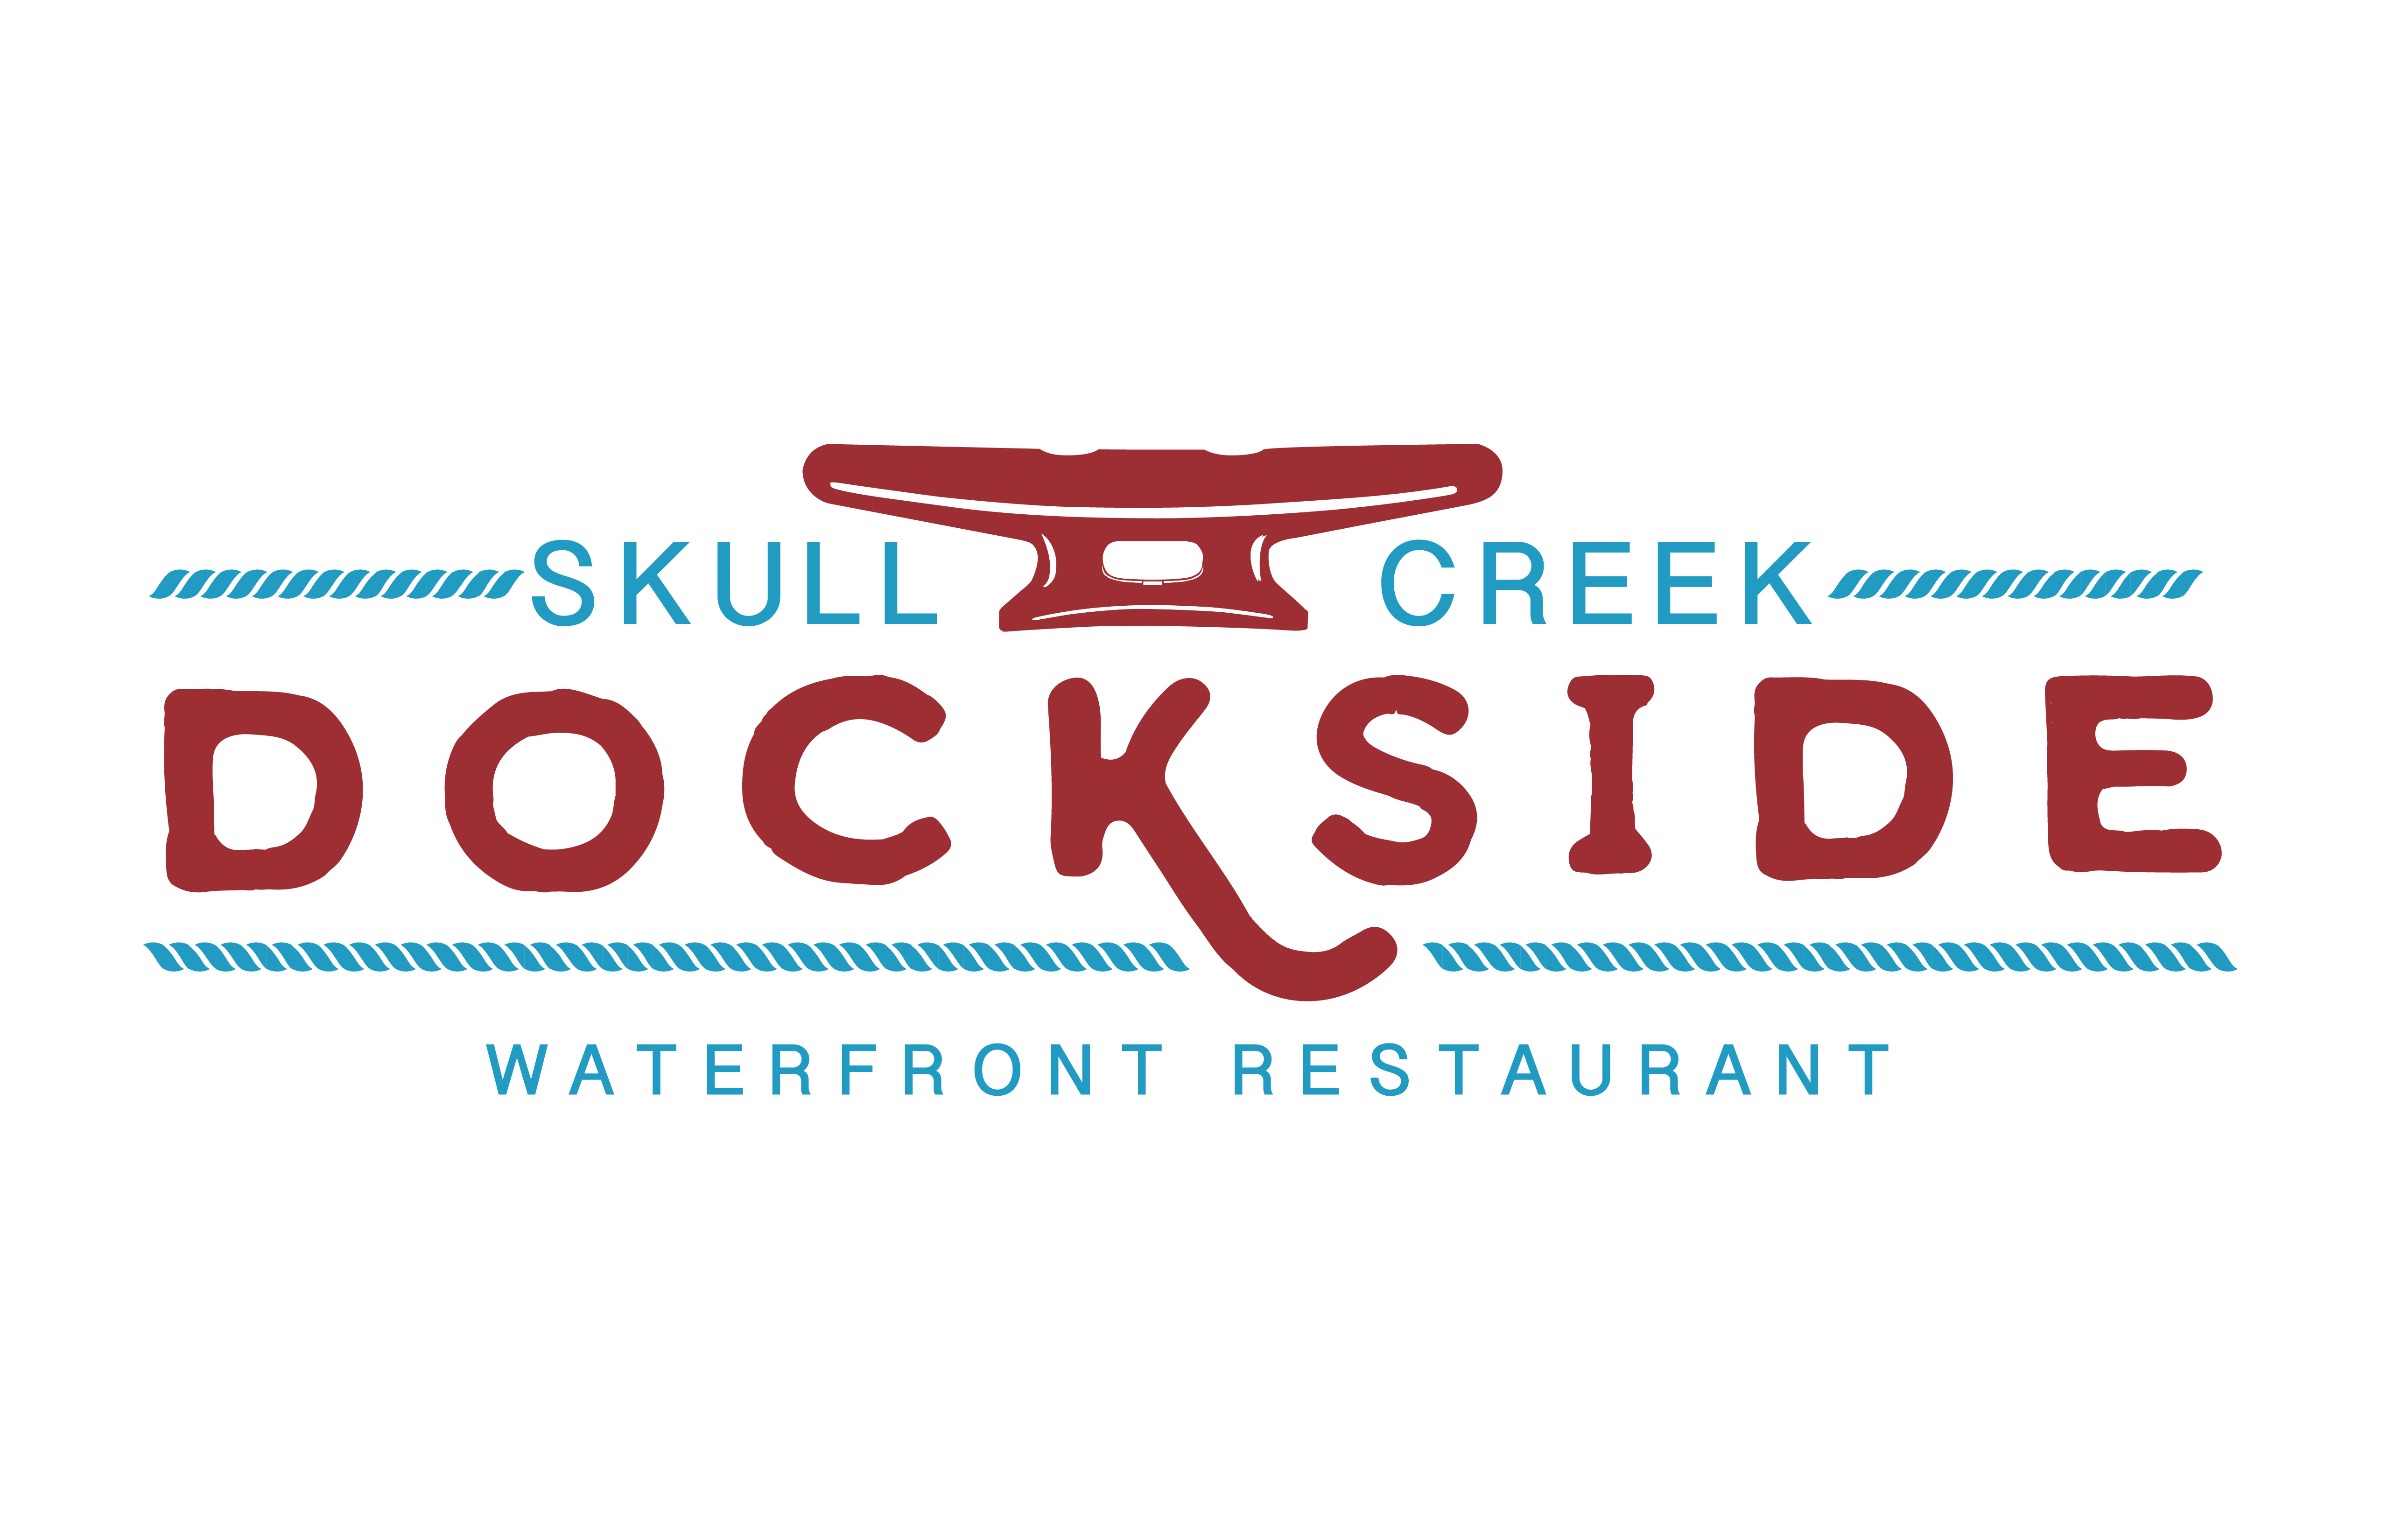 Skull Creek Dockside